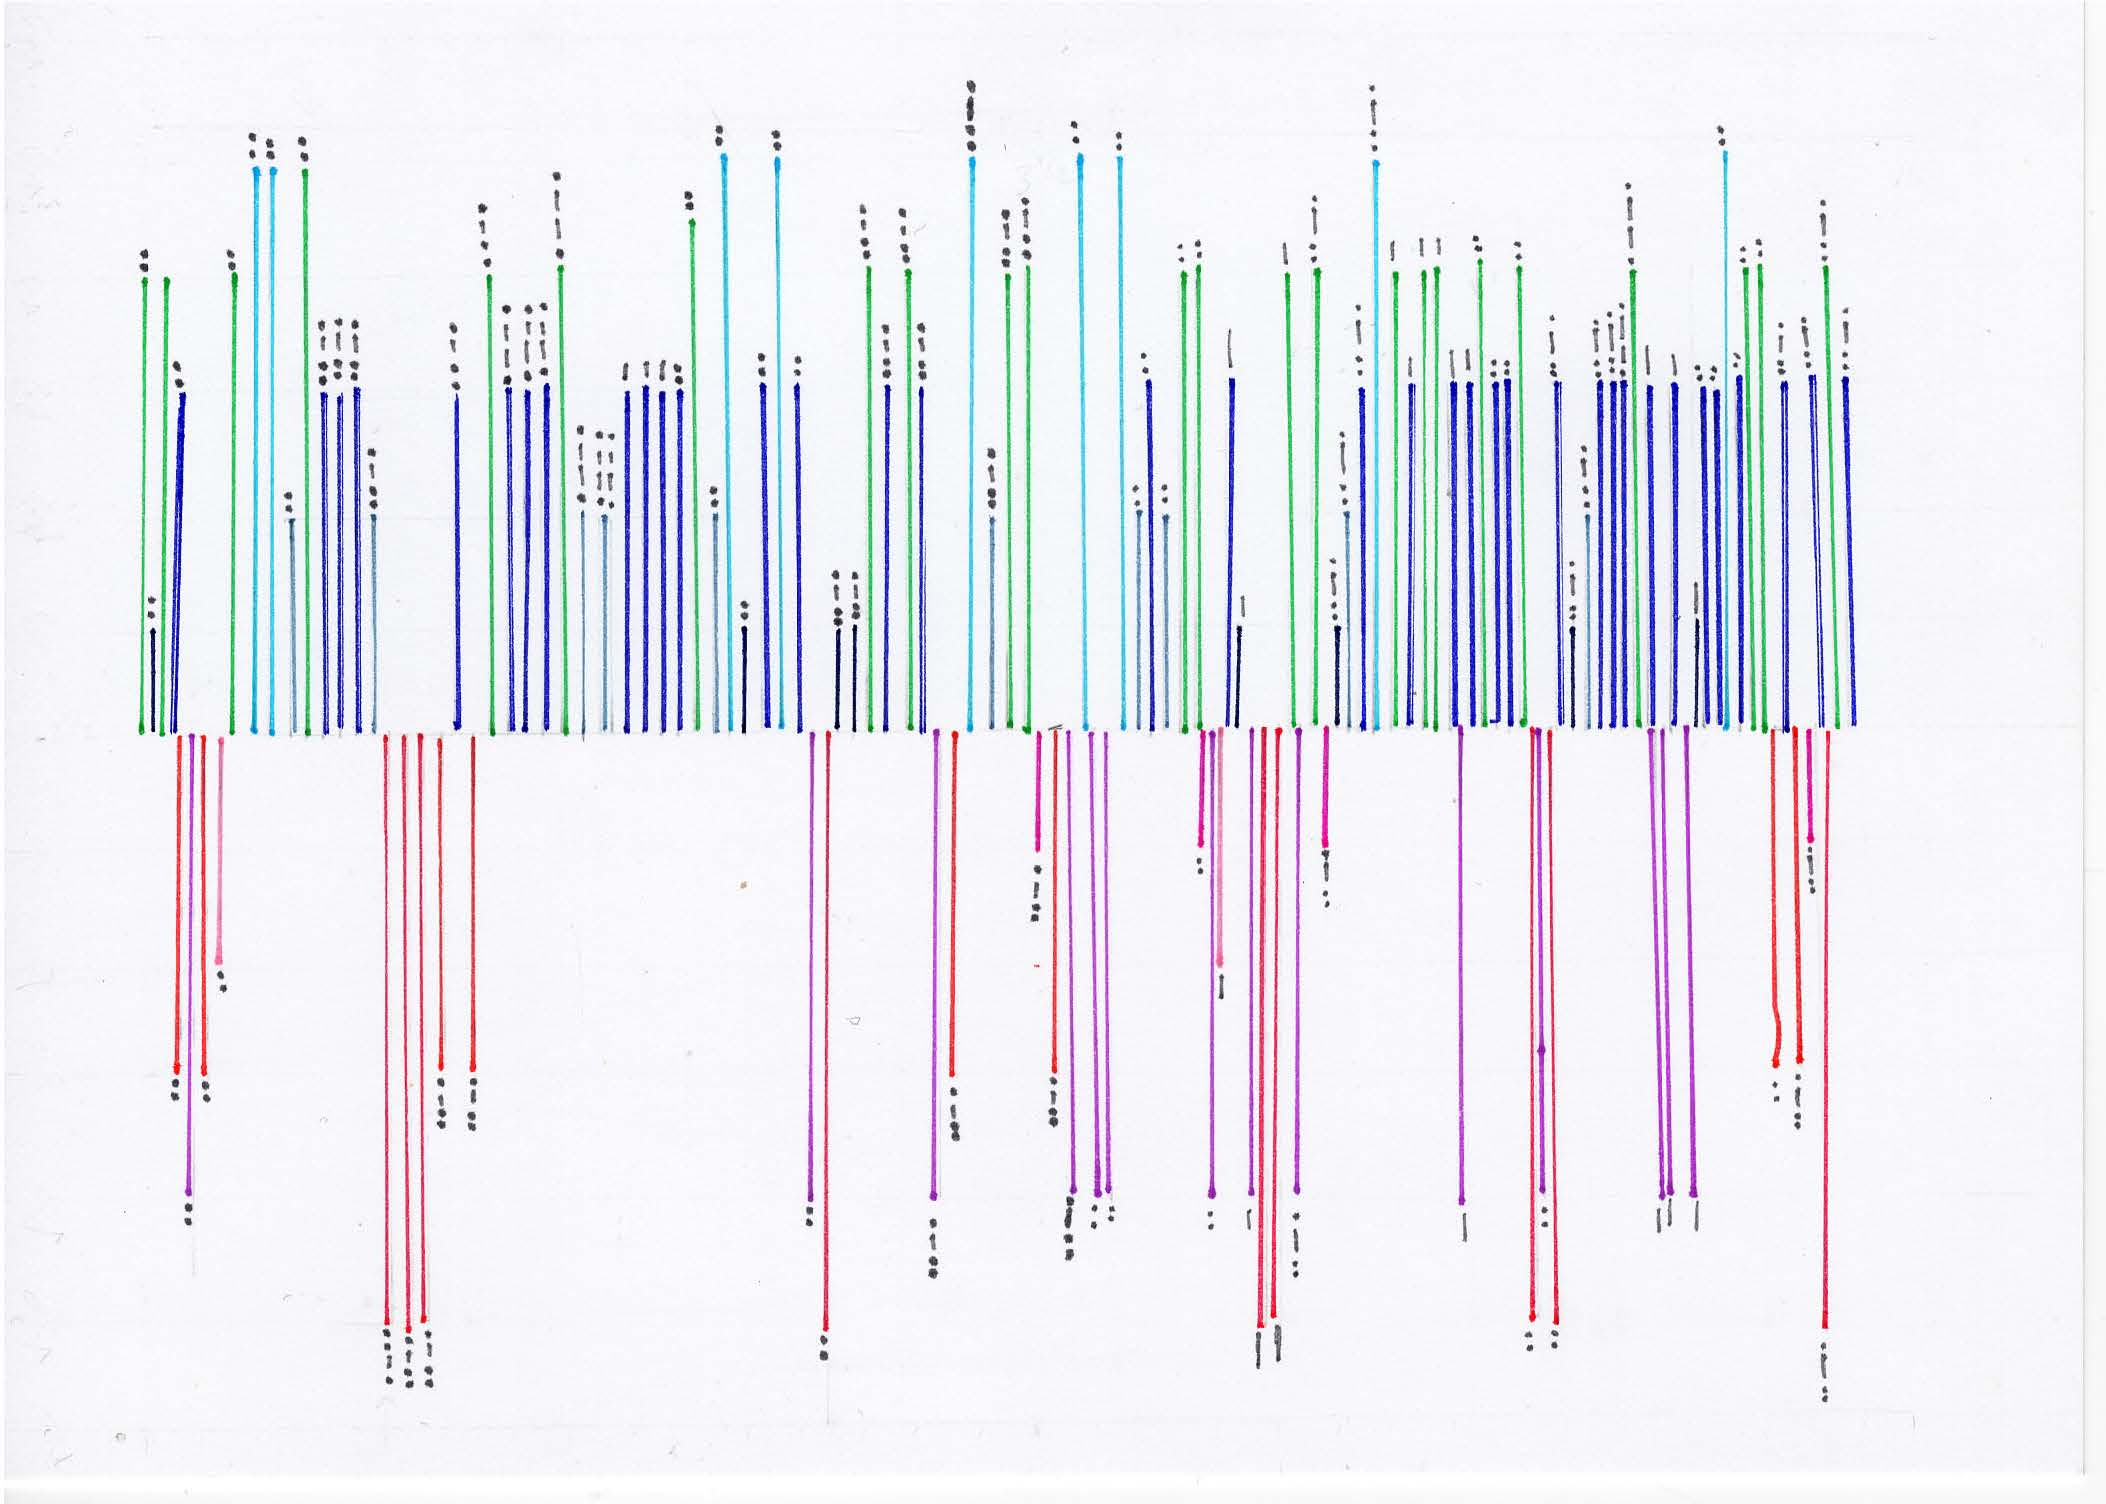 Handdrawn illustration of data, vertical lines in different shades of red, pink, green, and blue.